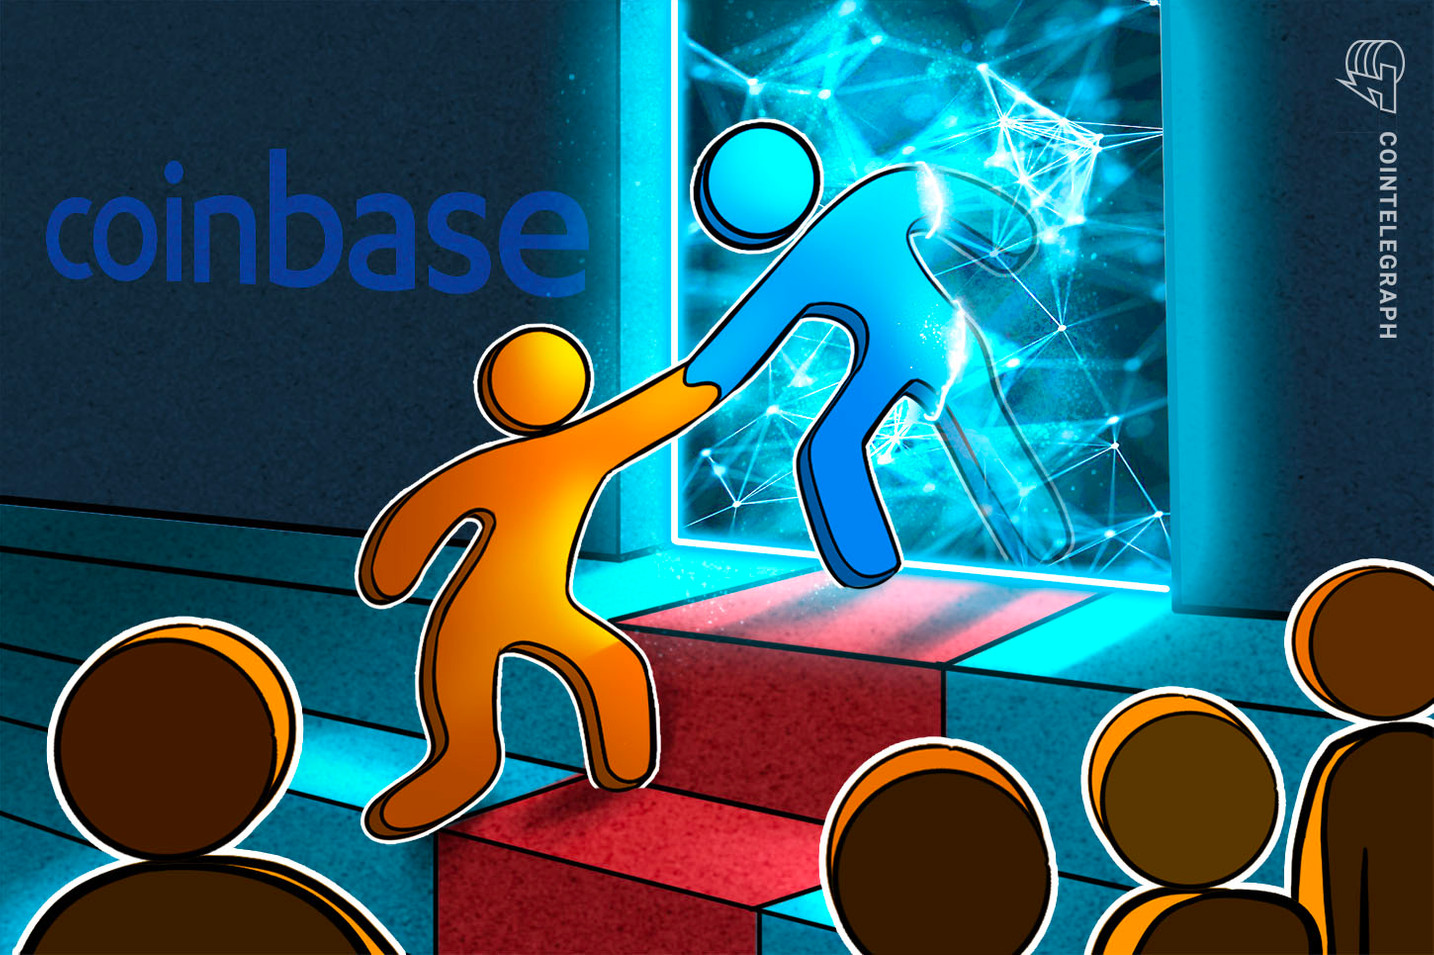 Coinbase Added 8 Million New Users in the Past Year